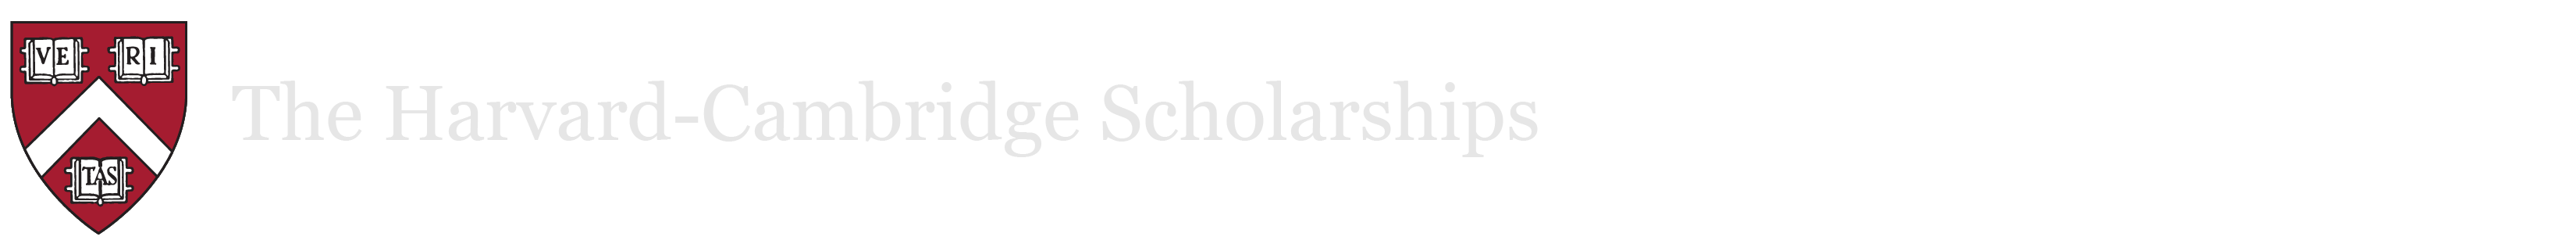 The Harvard-Cambridge Scholarships